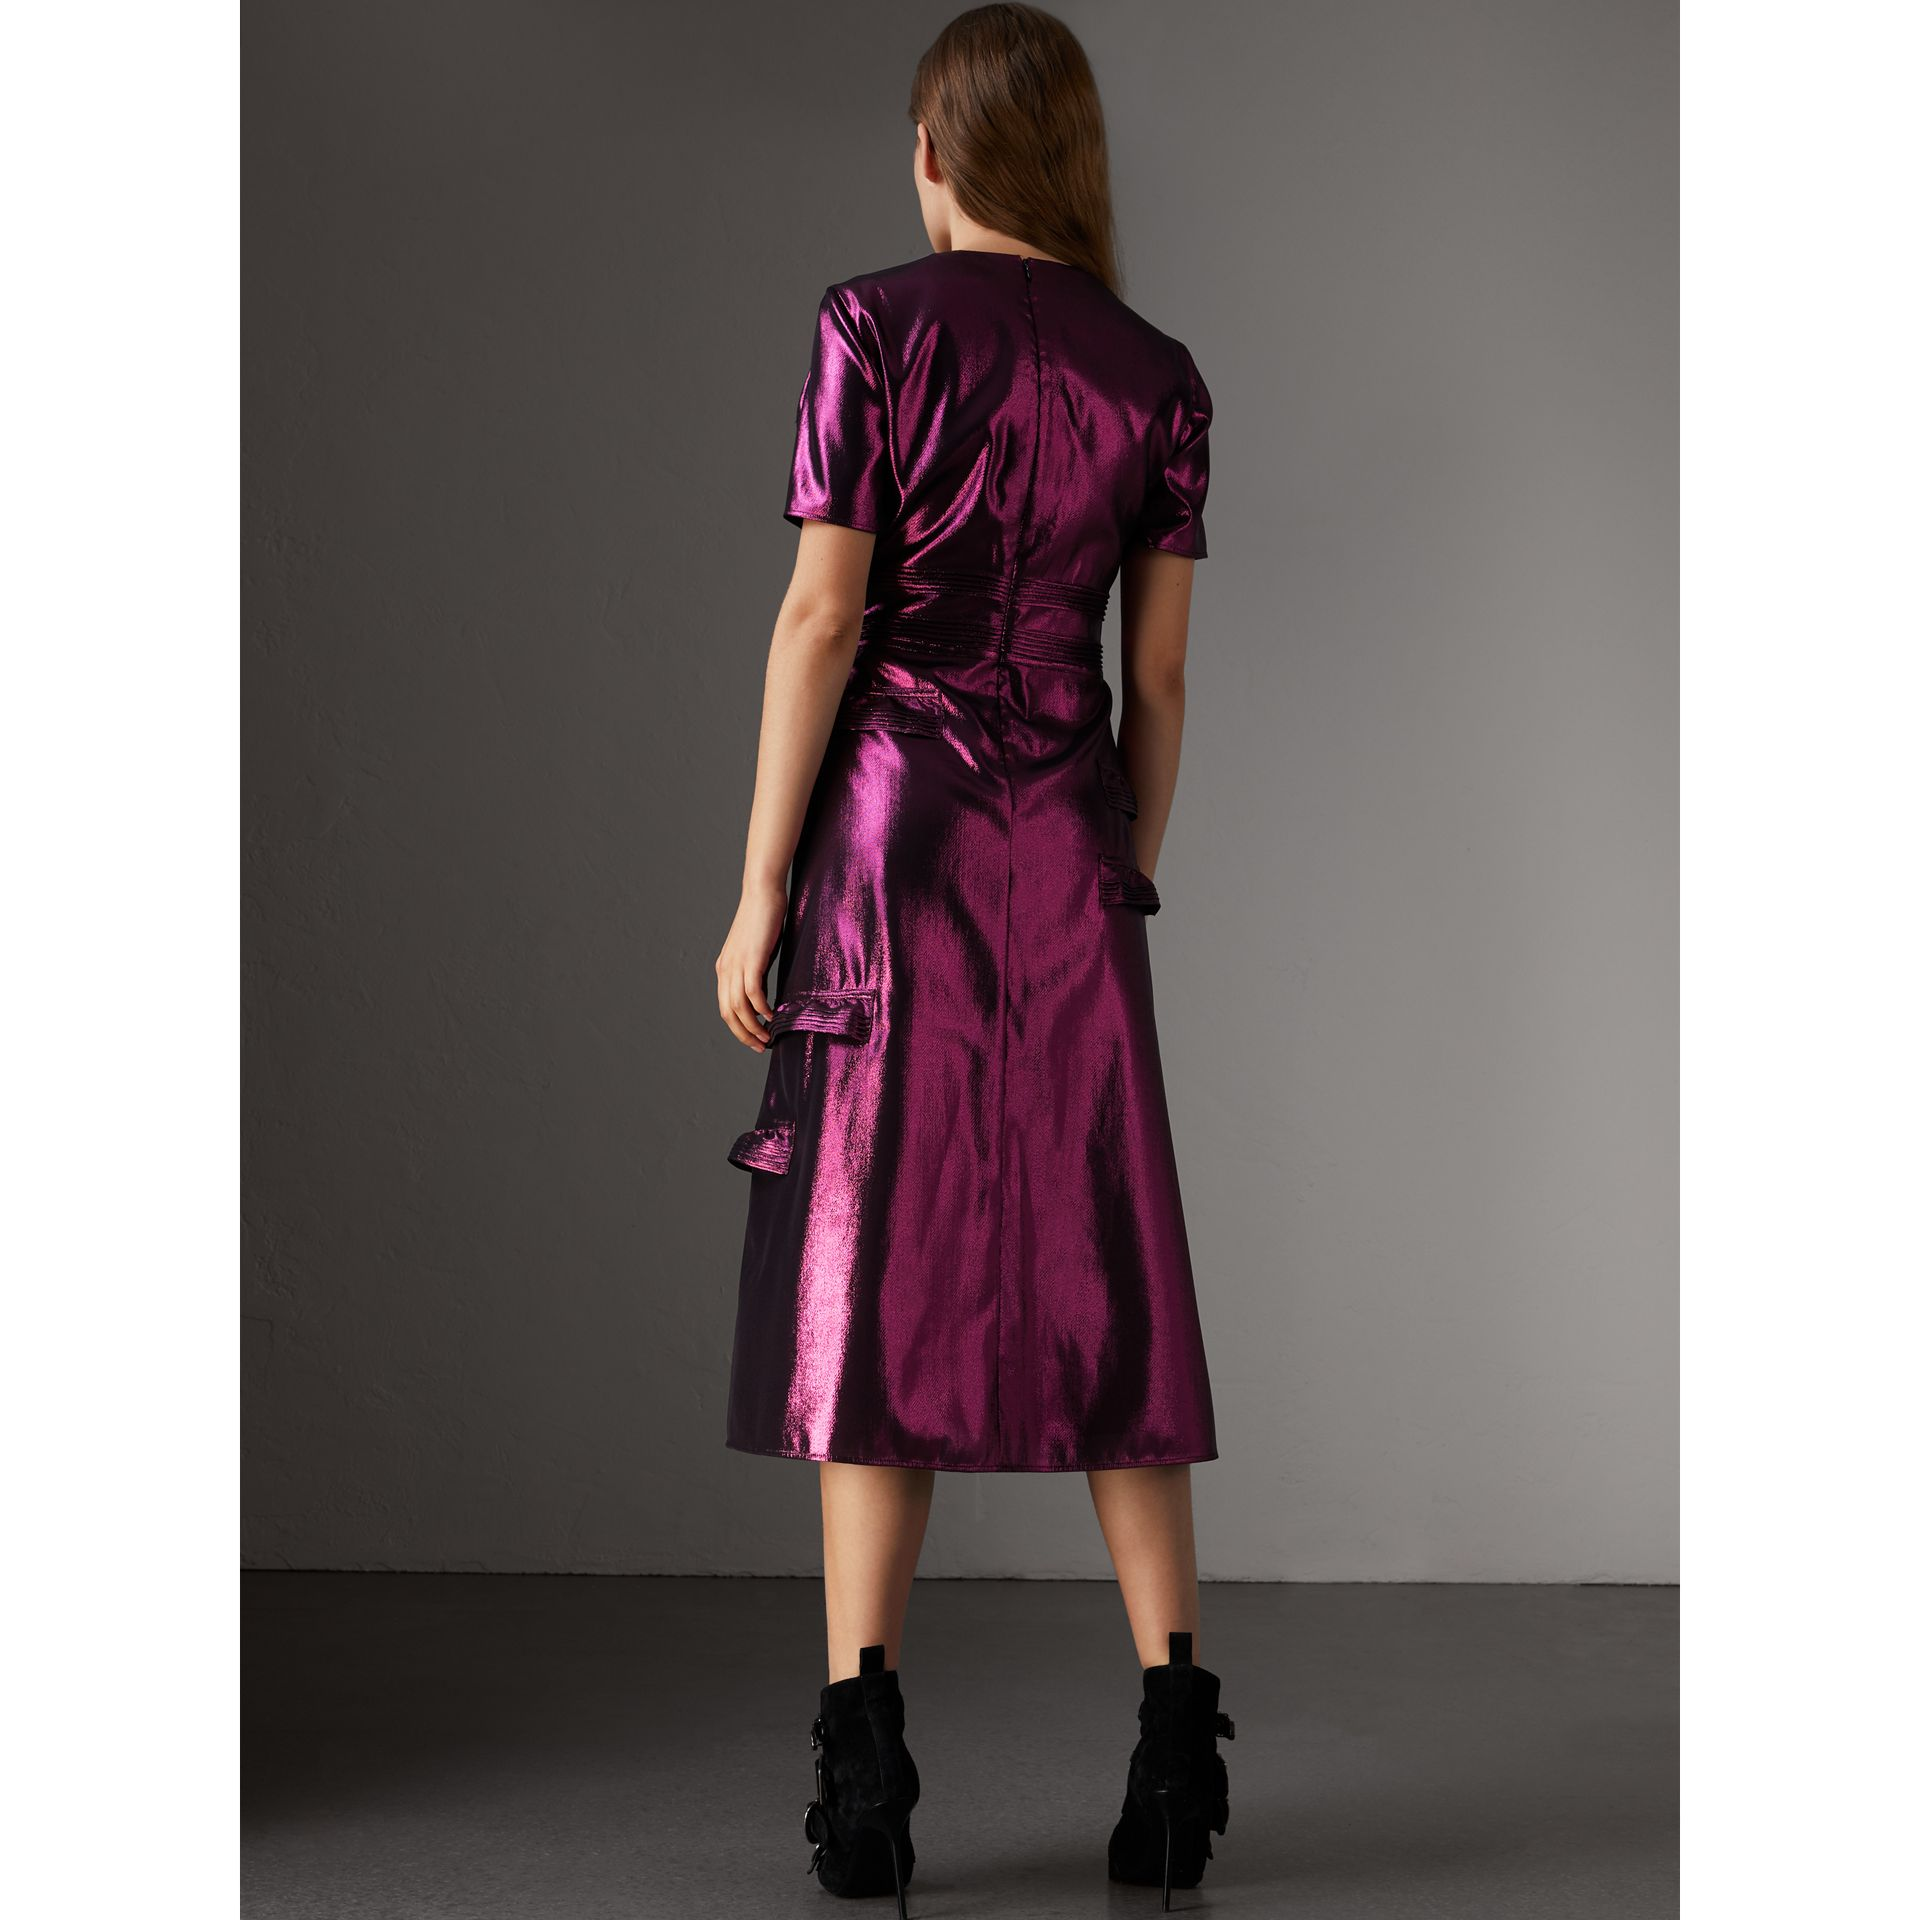 Short-sleeve Ruffle Detail Lamé Dress – Online Exclusive in Bright Fuchsia - Women | Burberry United States - gallery image 2